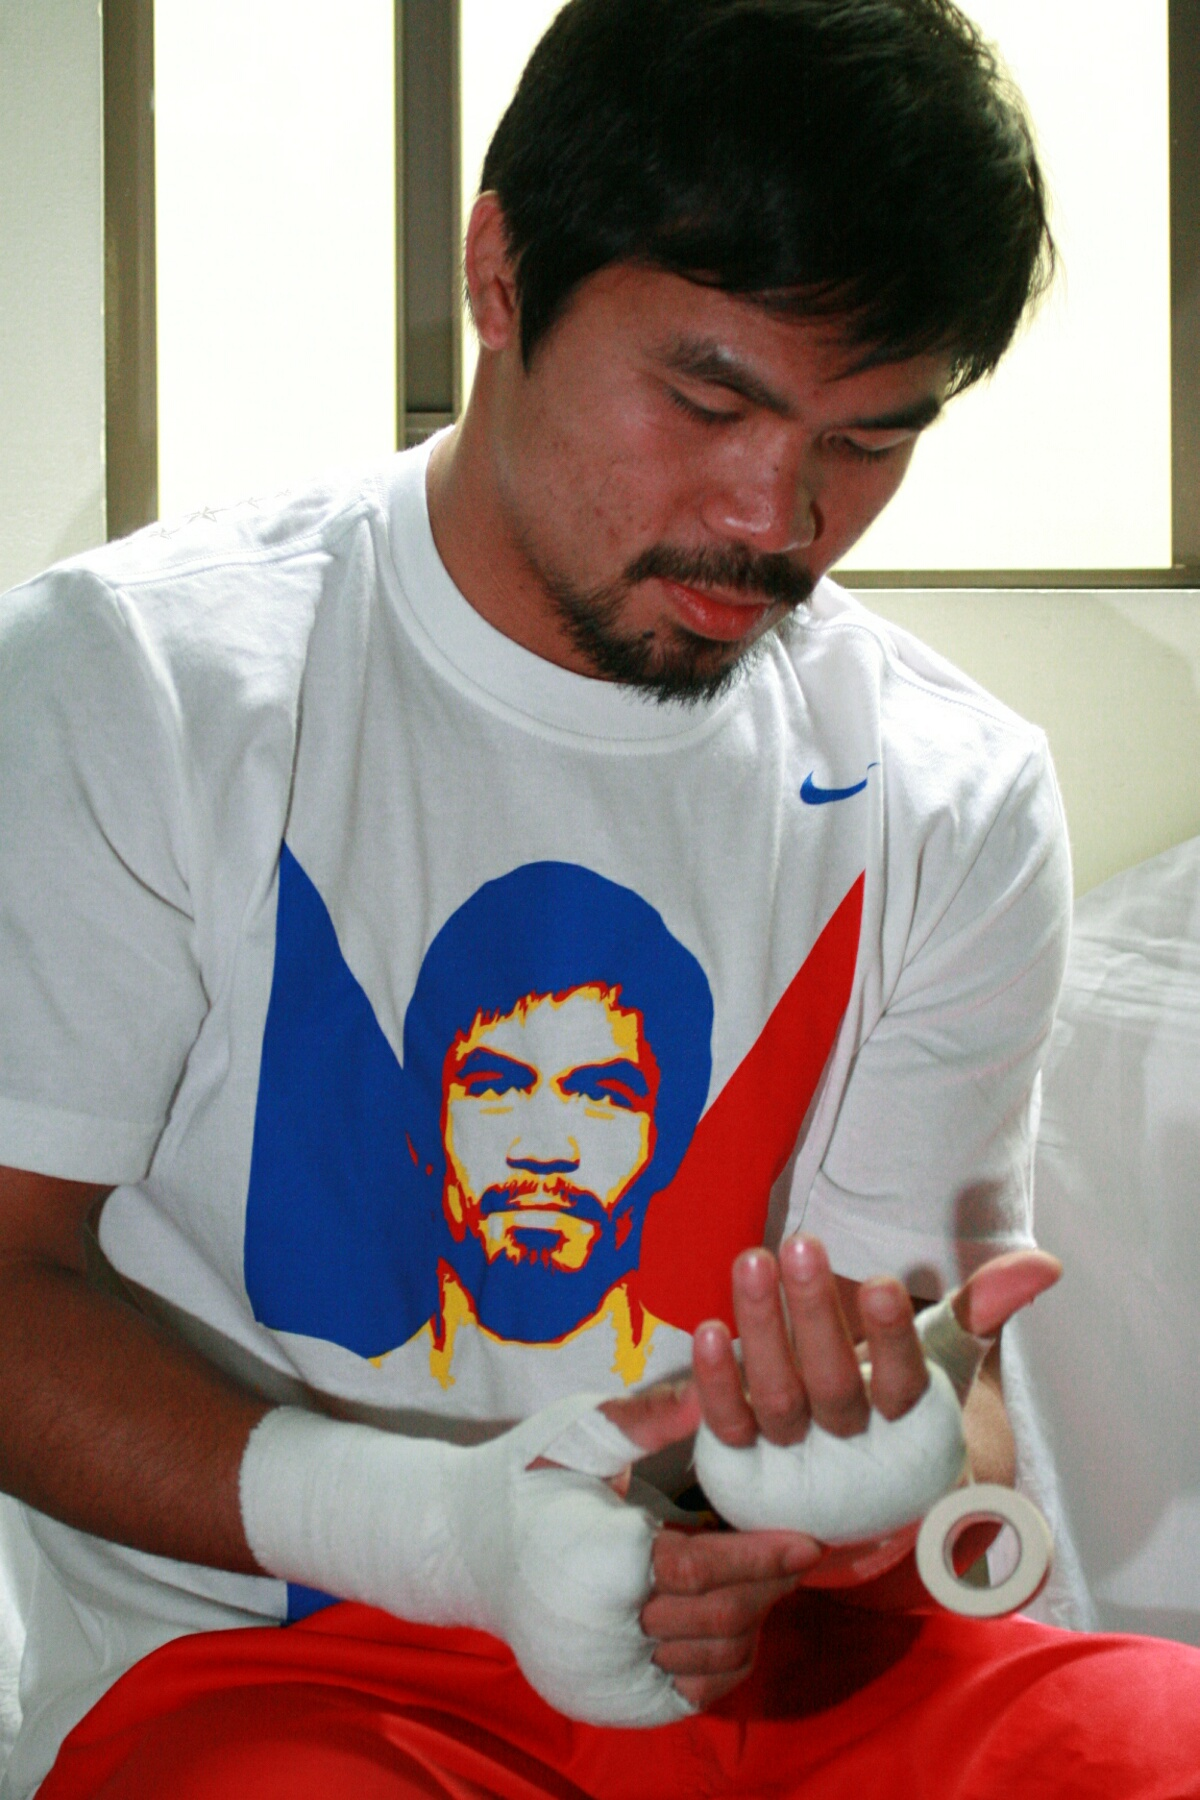 Pacquiao favorite pick with 3-to-1 over the American challenger Broner